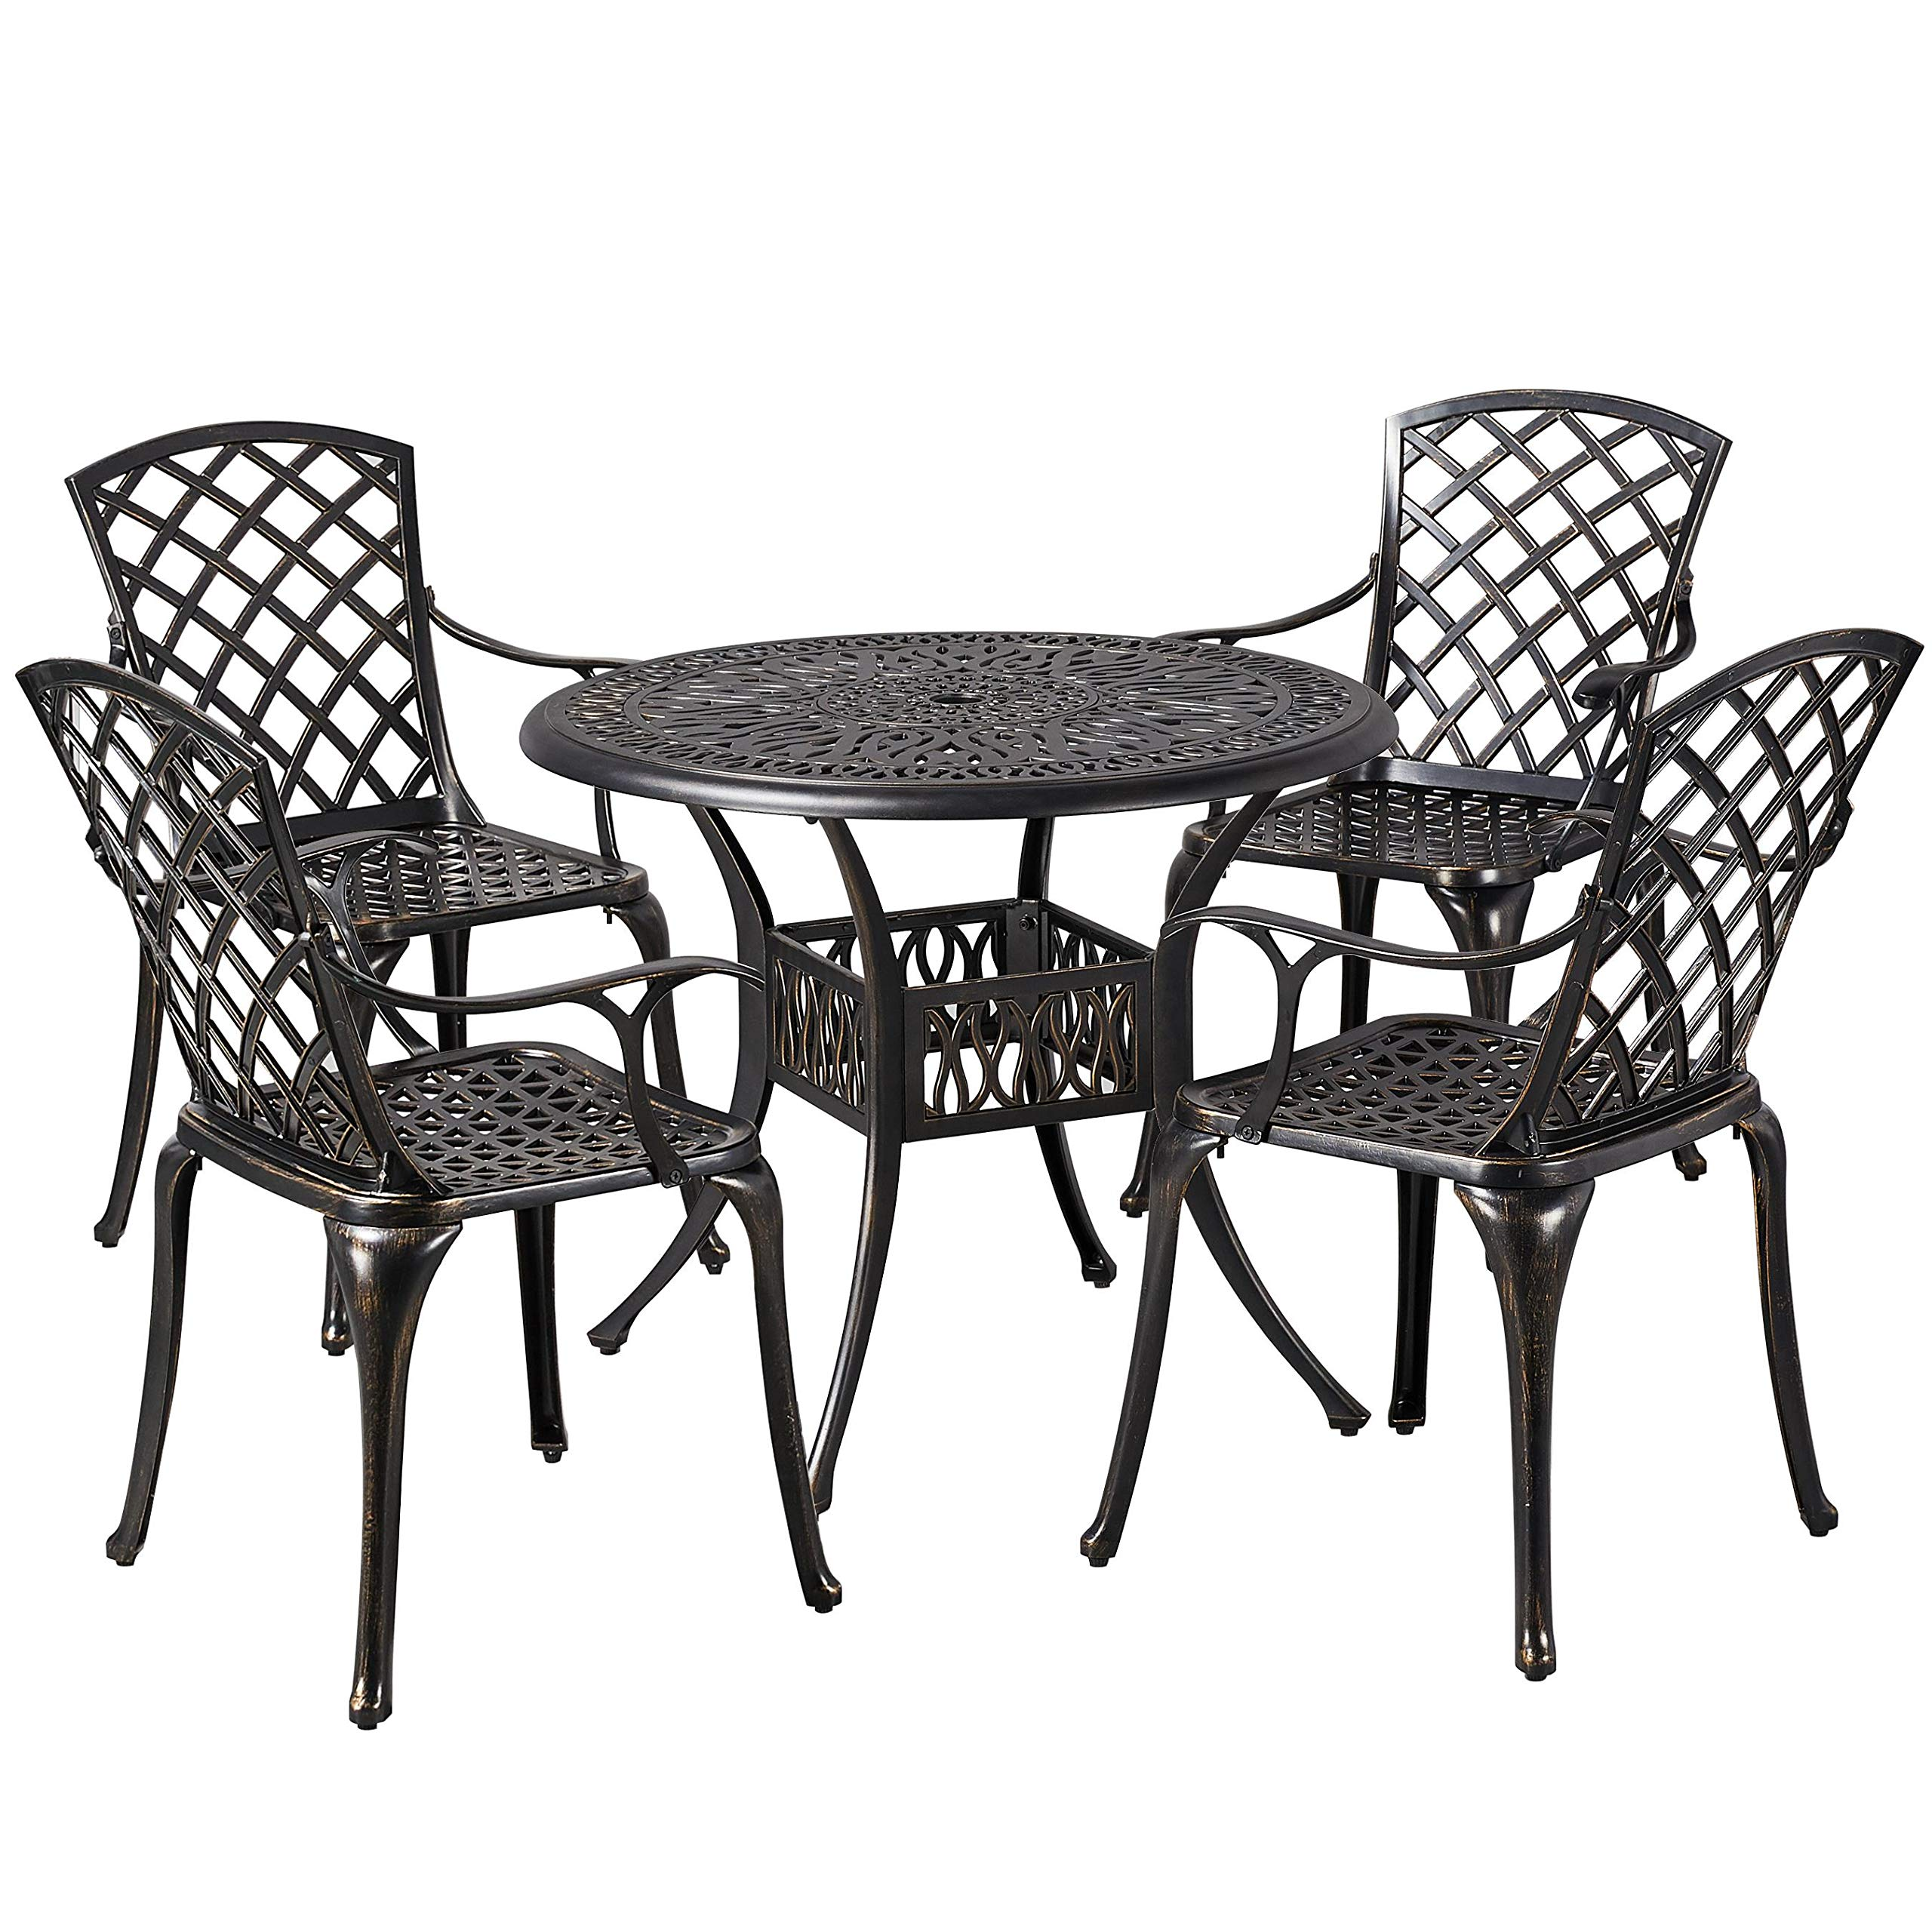 YAHEETECH 5-Piece Outdoor Furniture Dining Set, All-Weather Cast Aluminum Conversation Set for Yard Garden Deck, Includes 4 Chairs and 1 Round Table with Umbrella Hole